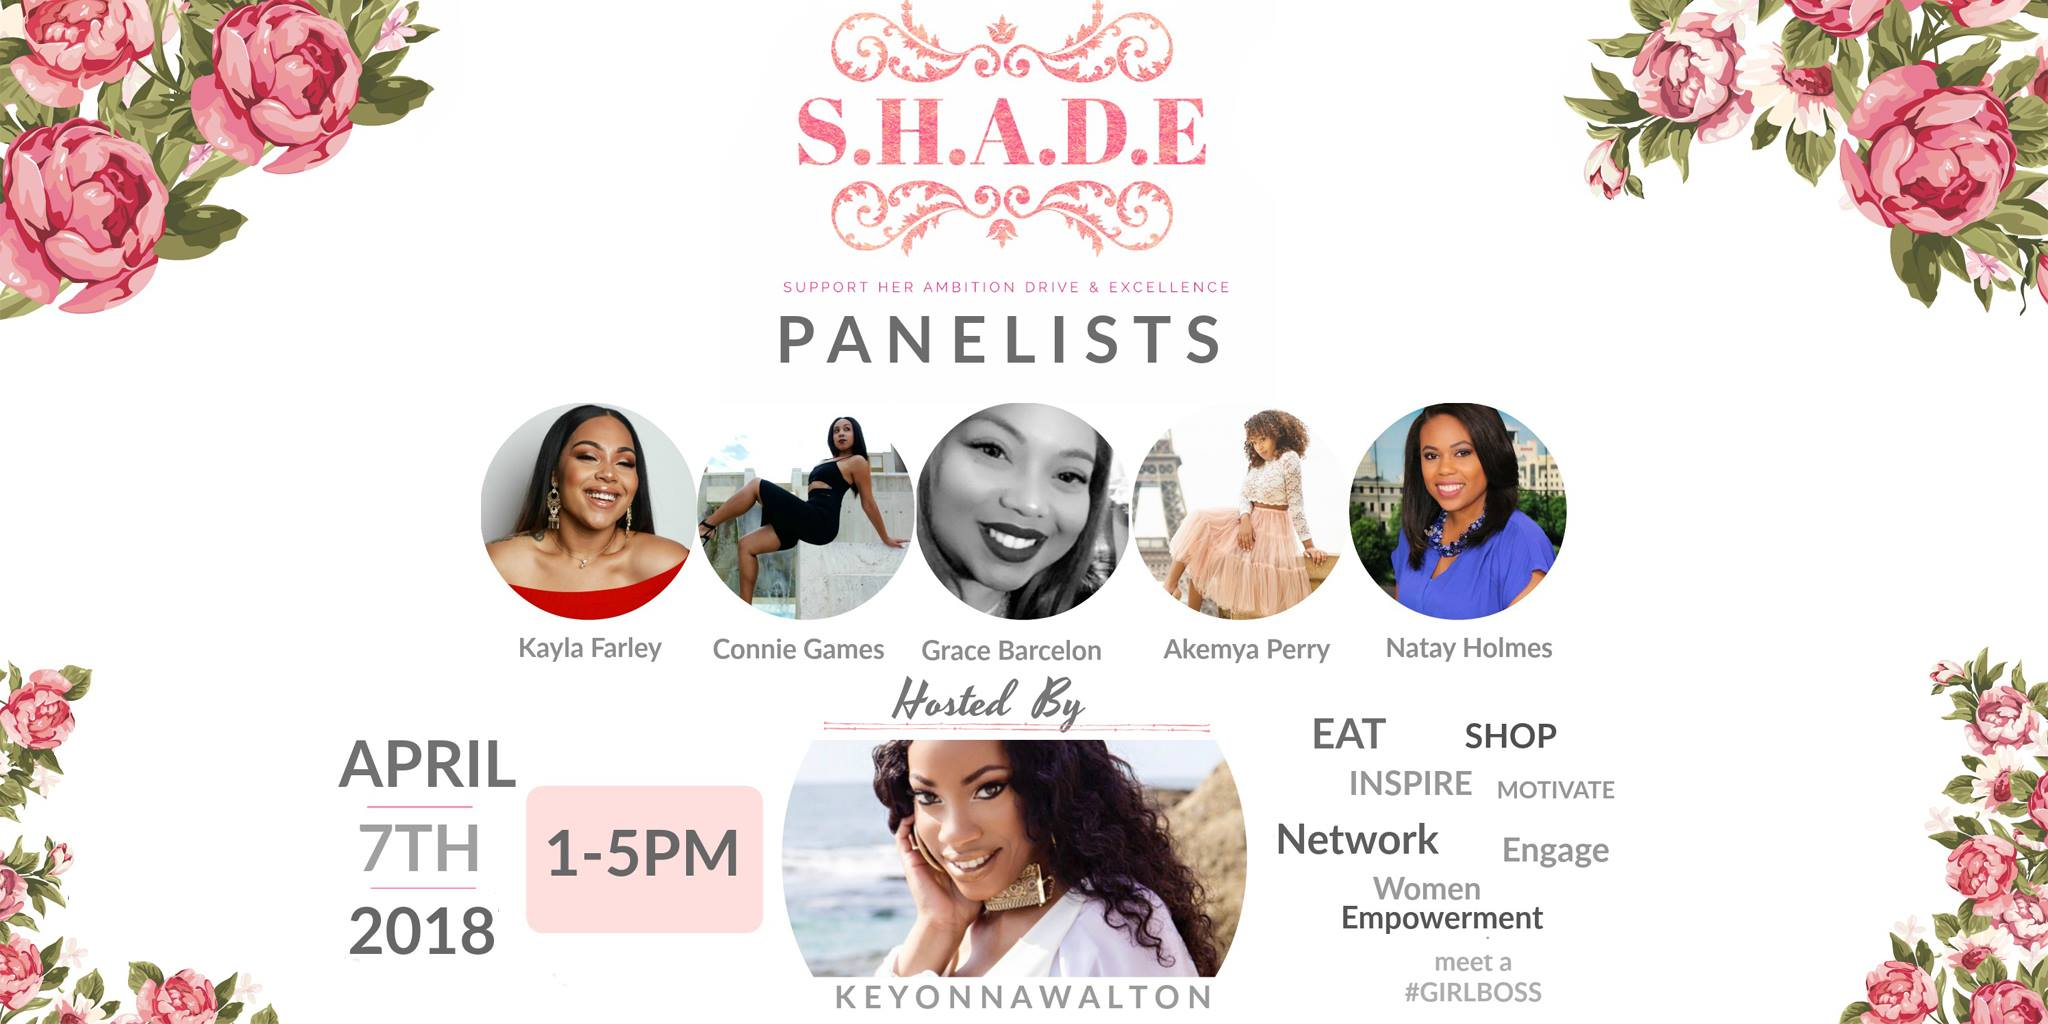 Lifting as we climb! Join us for an afternoon of empowerment and inspiration from amazing community leaders. We will have our favorite ethical goodies available at our pop up shop for you to enjoy!  Get your tickets here!  Eventbrite